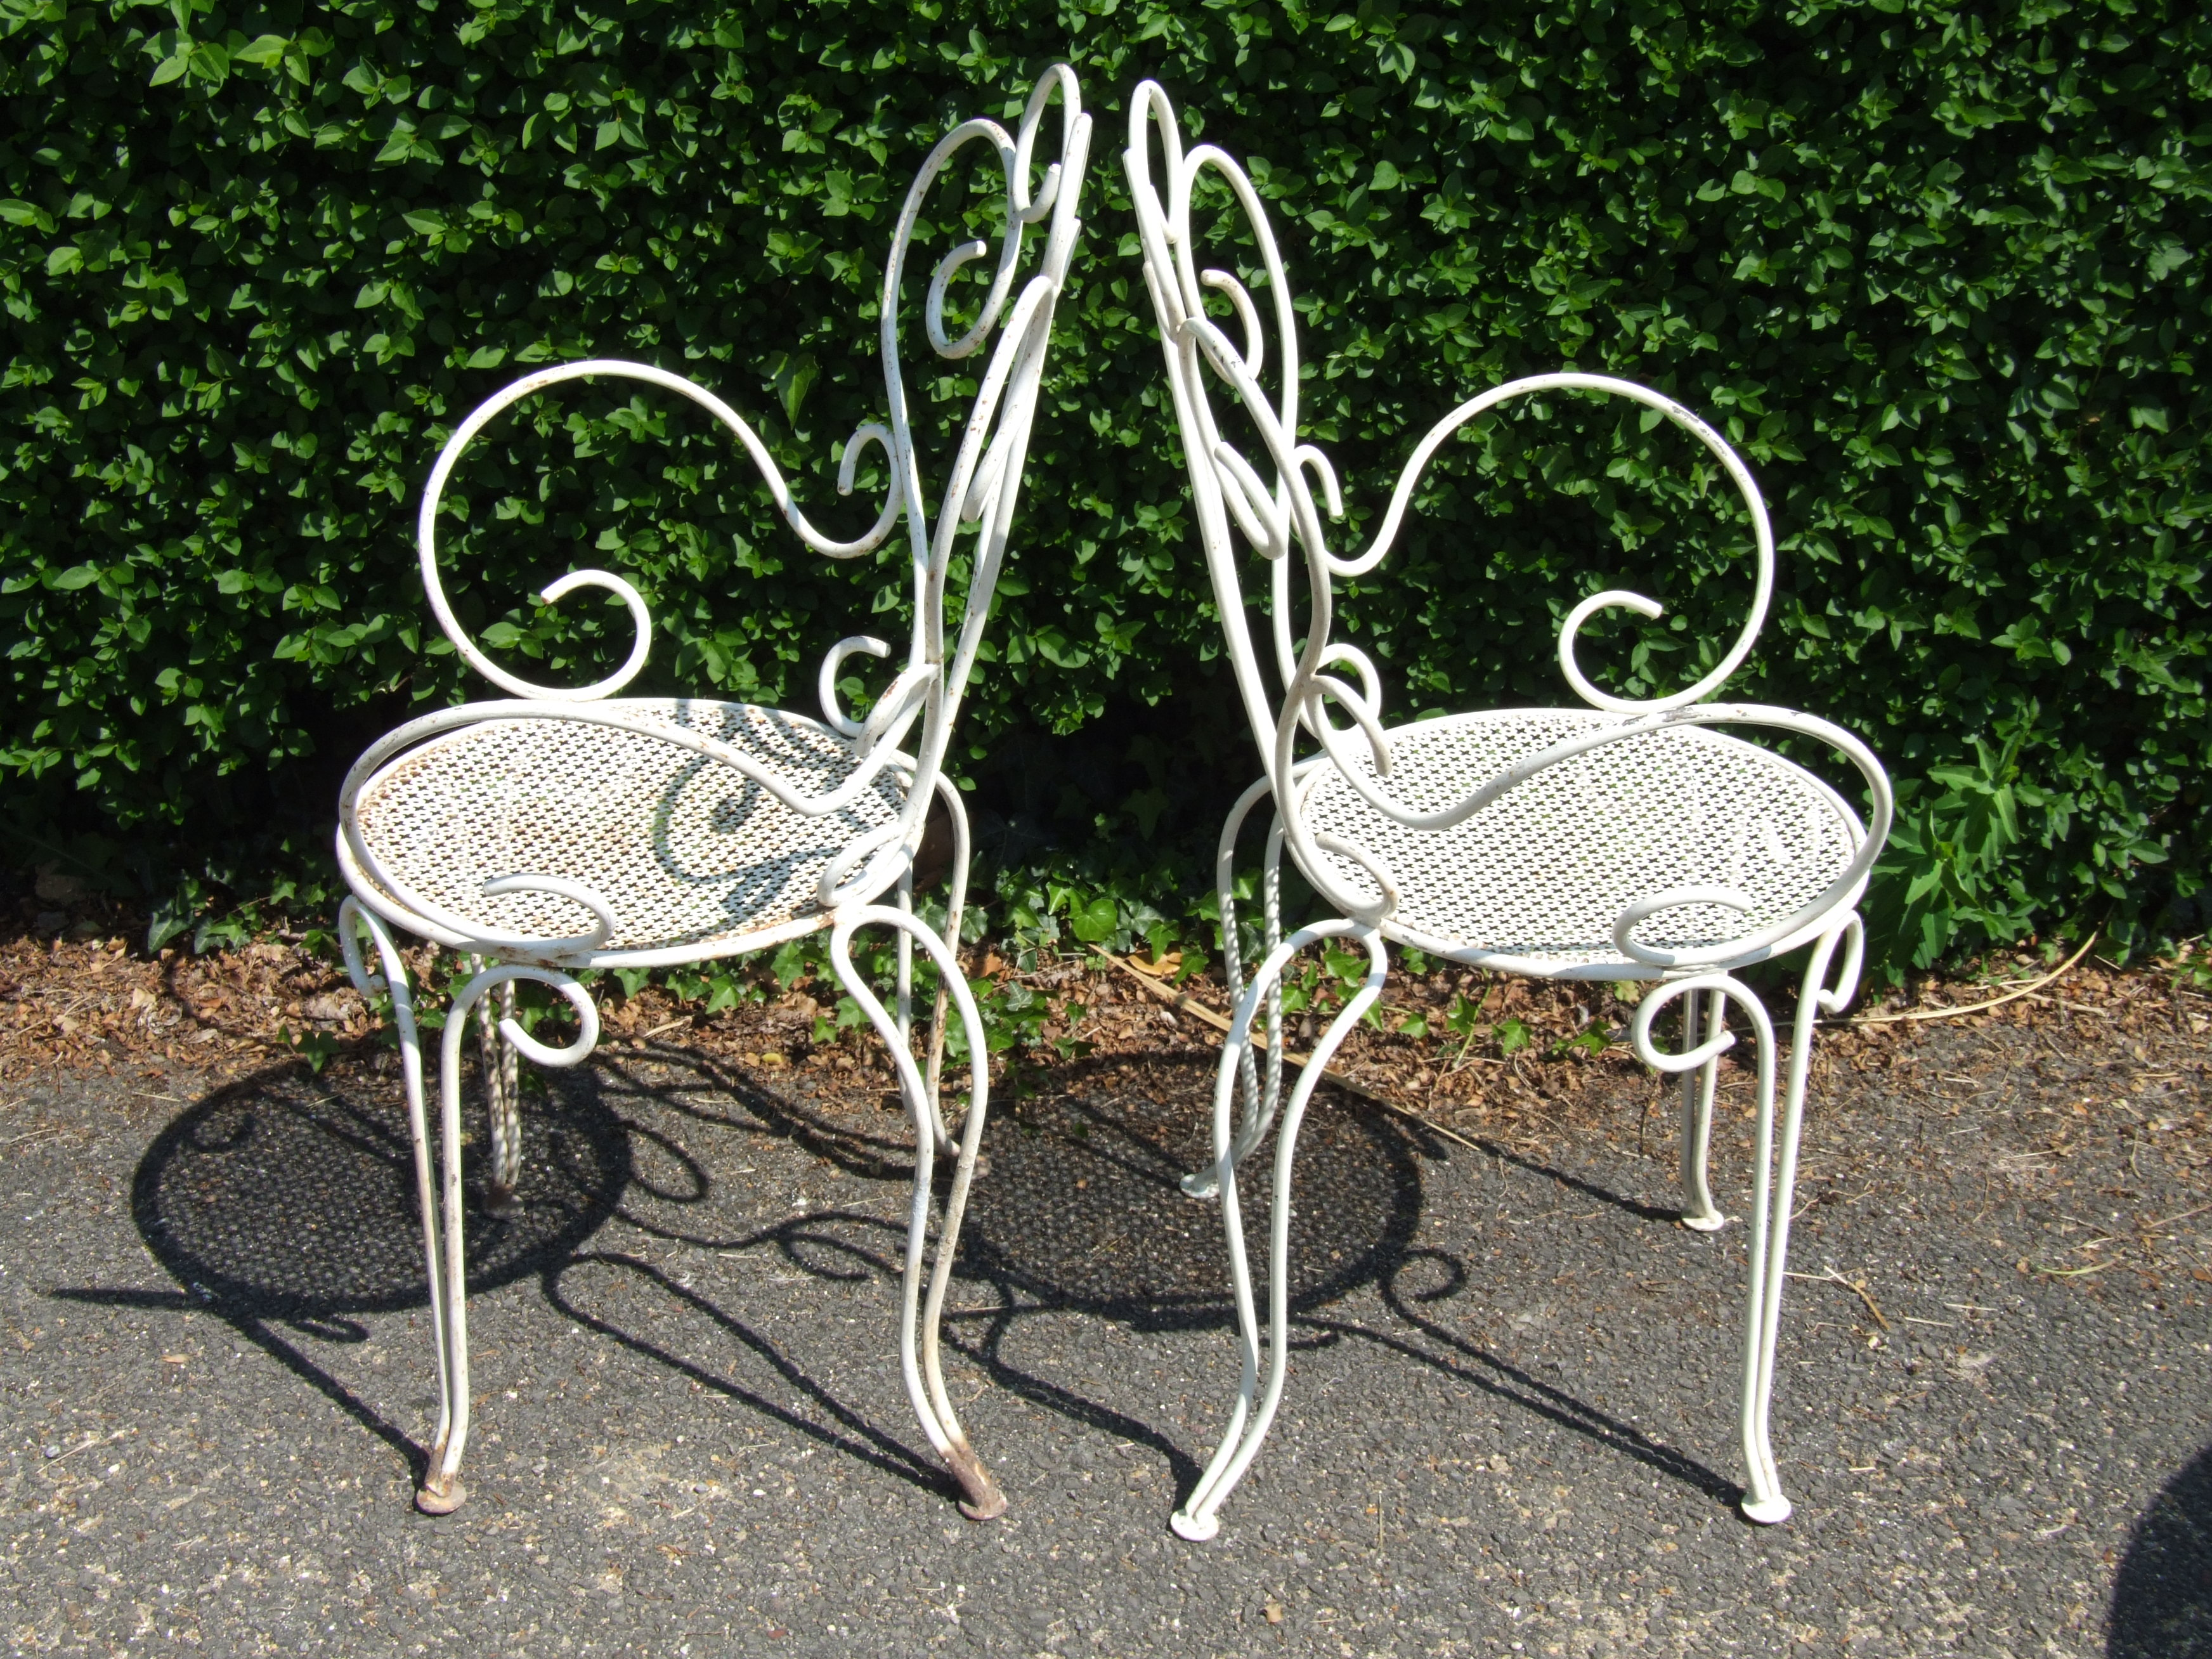 G099 s pair vintage french wrought iron garden patio chairs la belle toffe French metal garden furniture